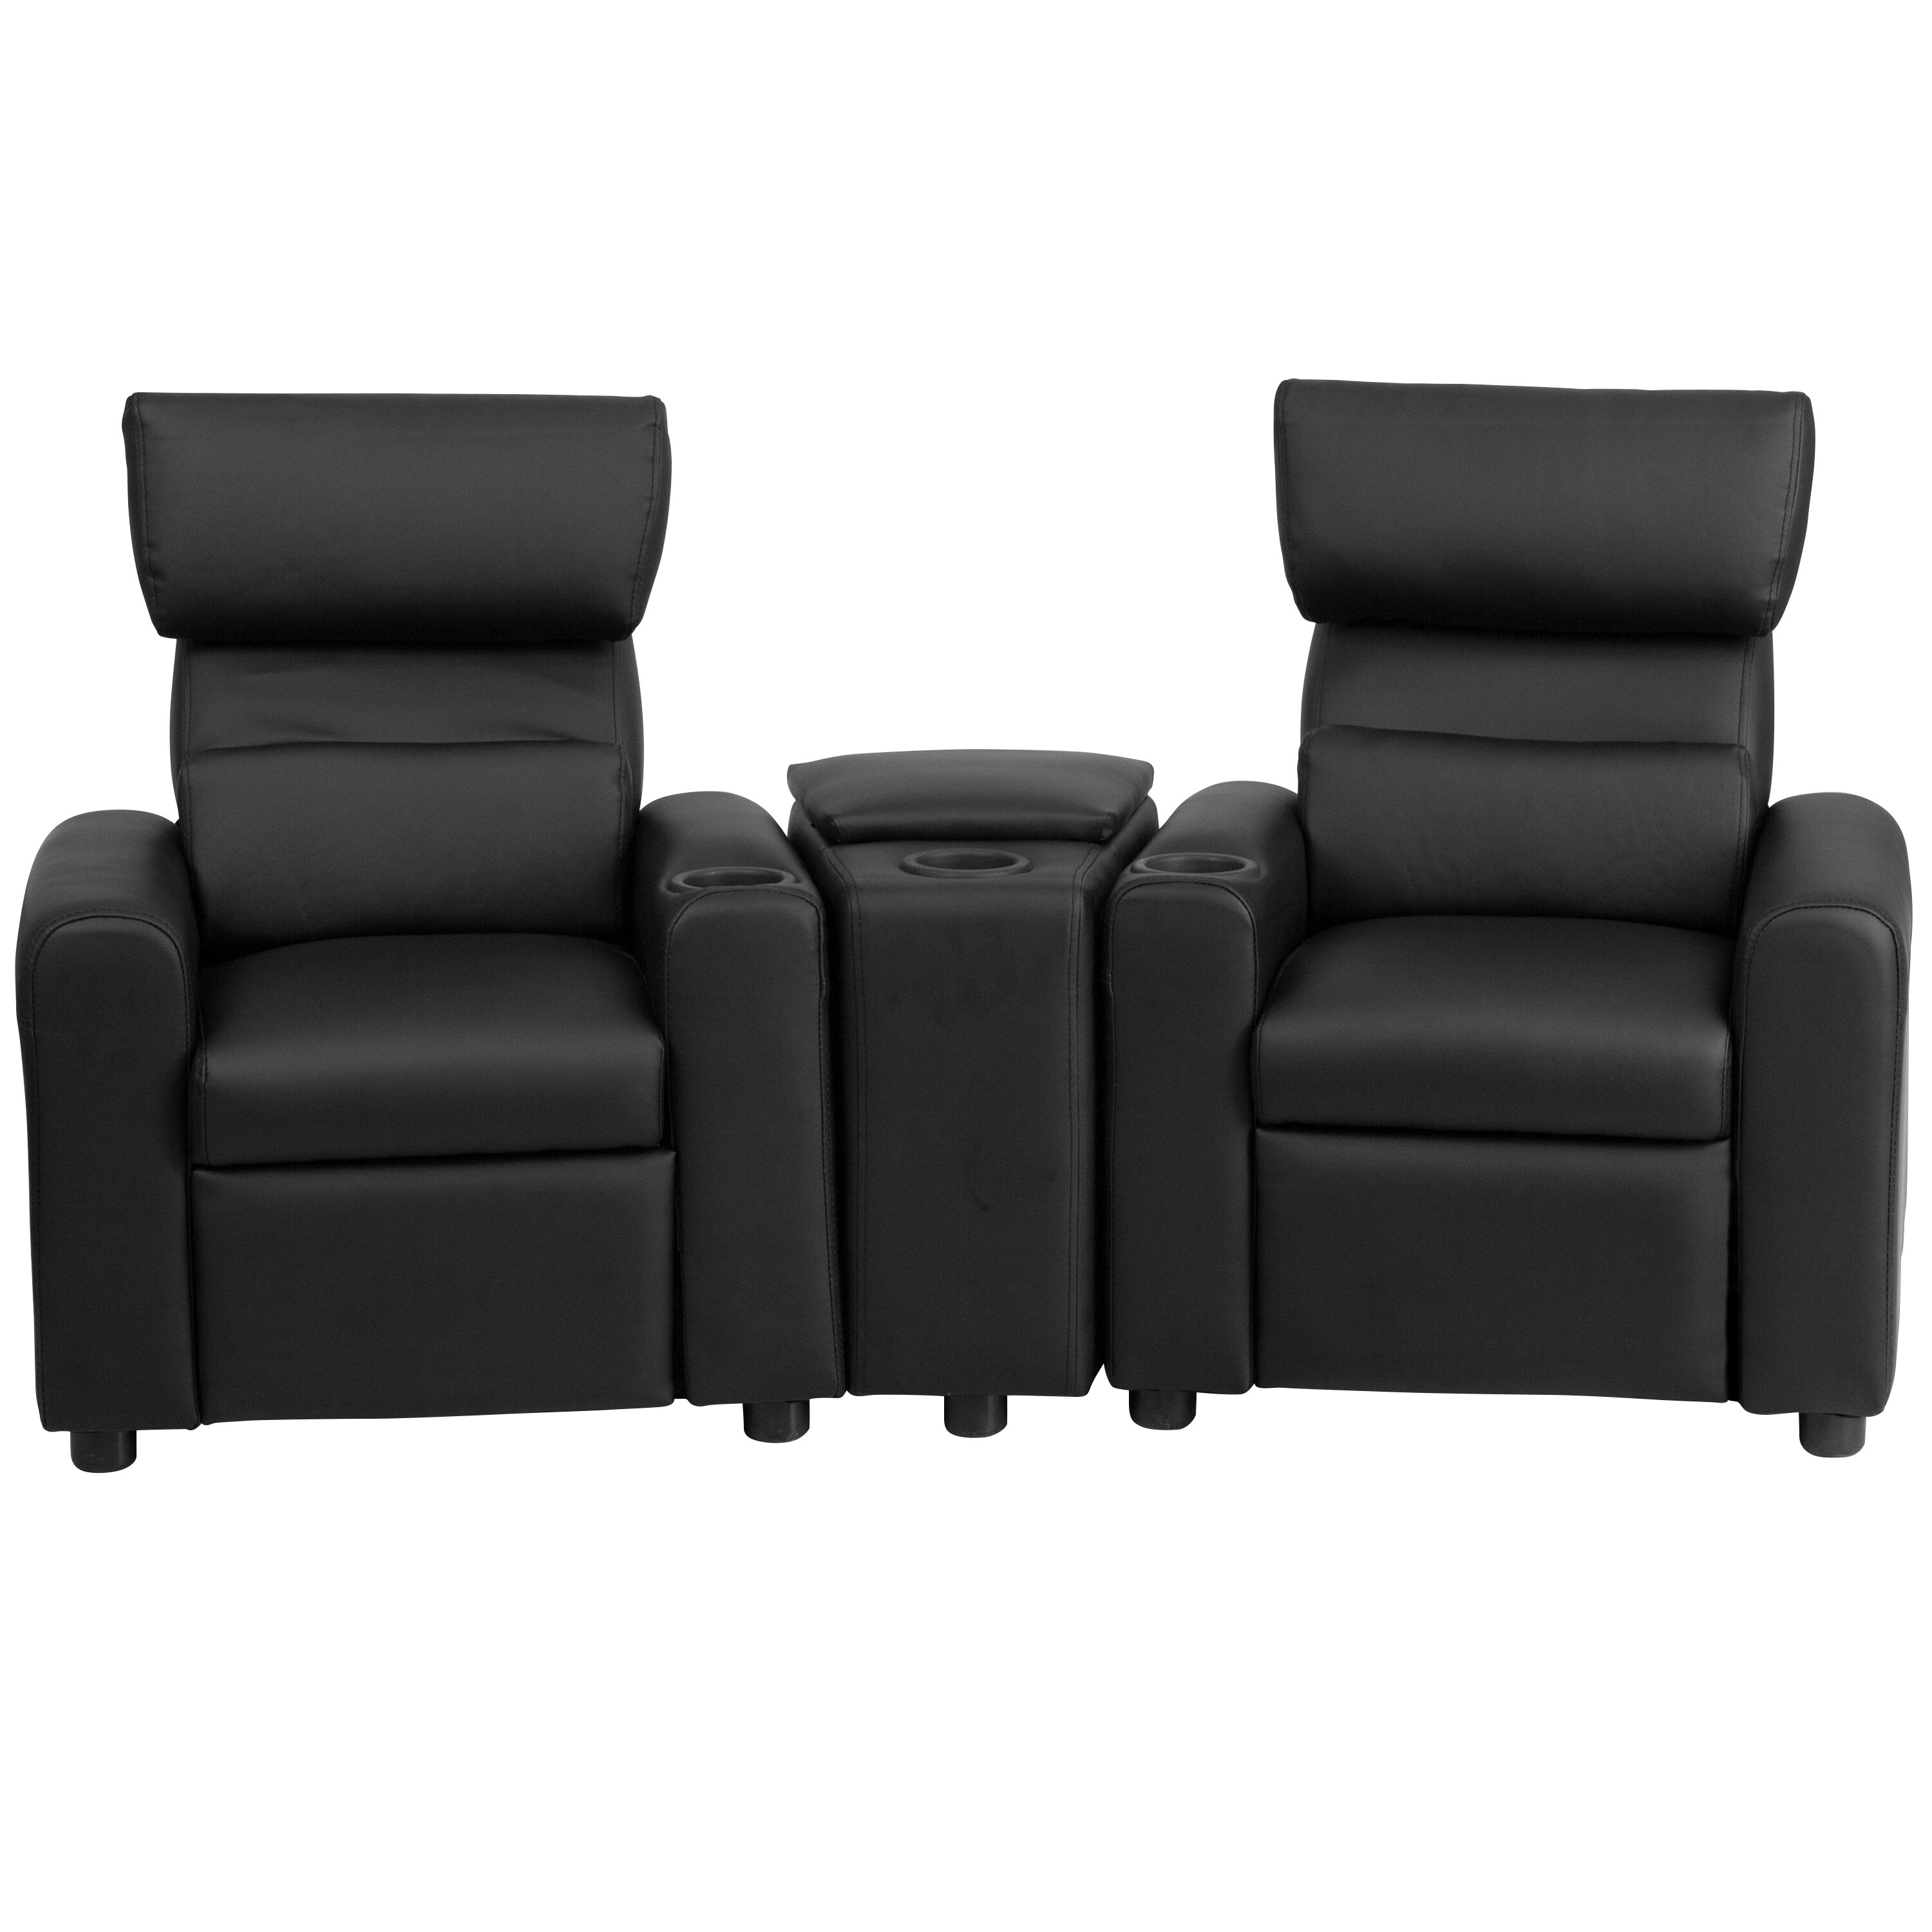 Flash Furniture Kids Leather Recliner With Storage Compartment And Cup  Holder U0026 Reviews  Wayfair Recliner Cup Holder Storage L2